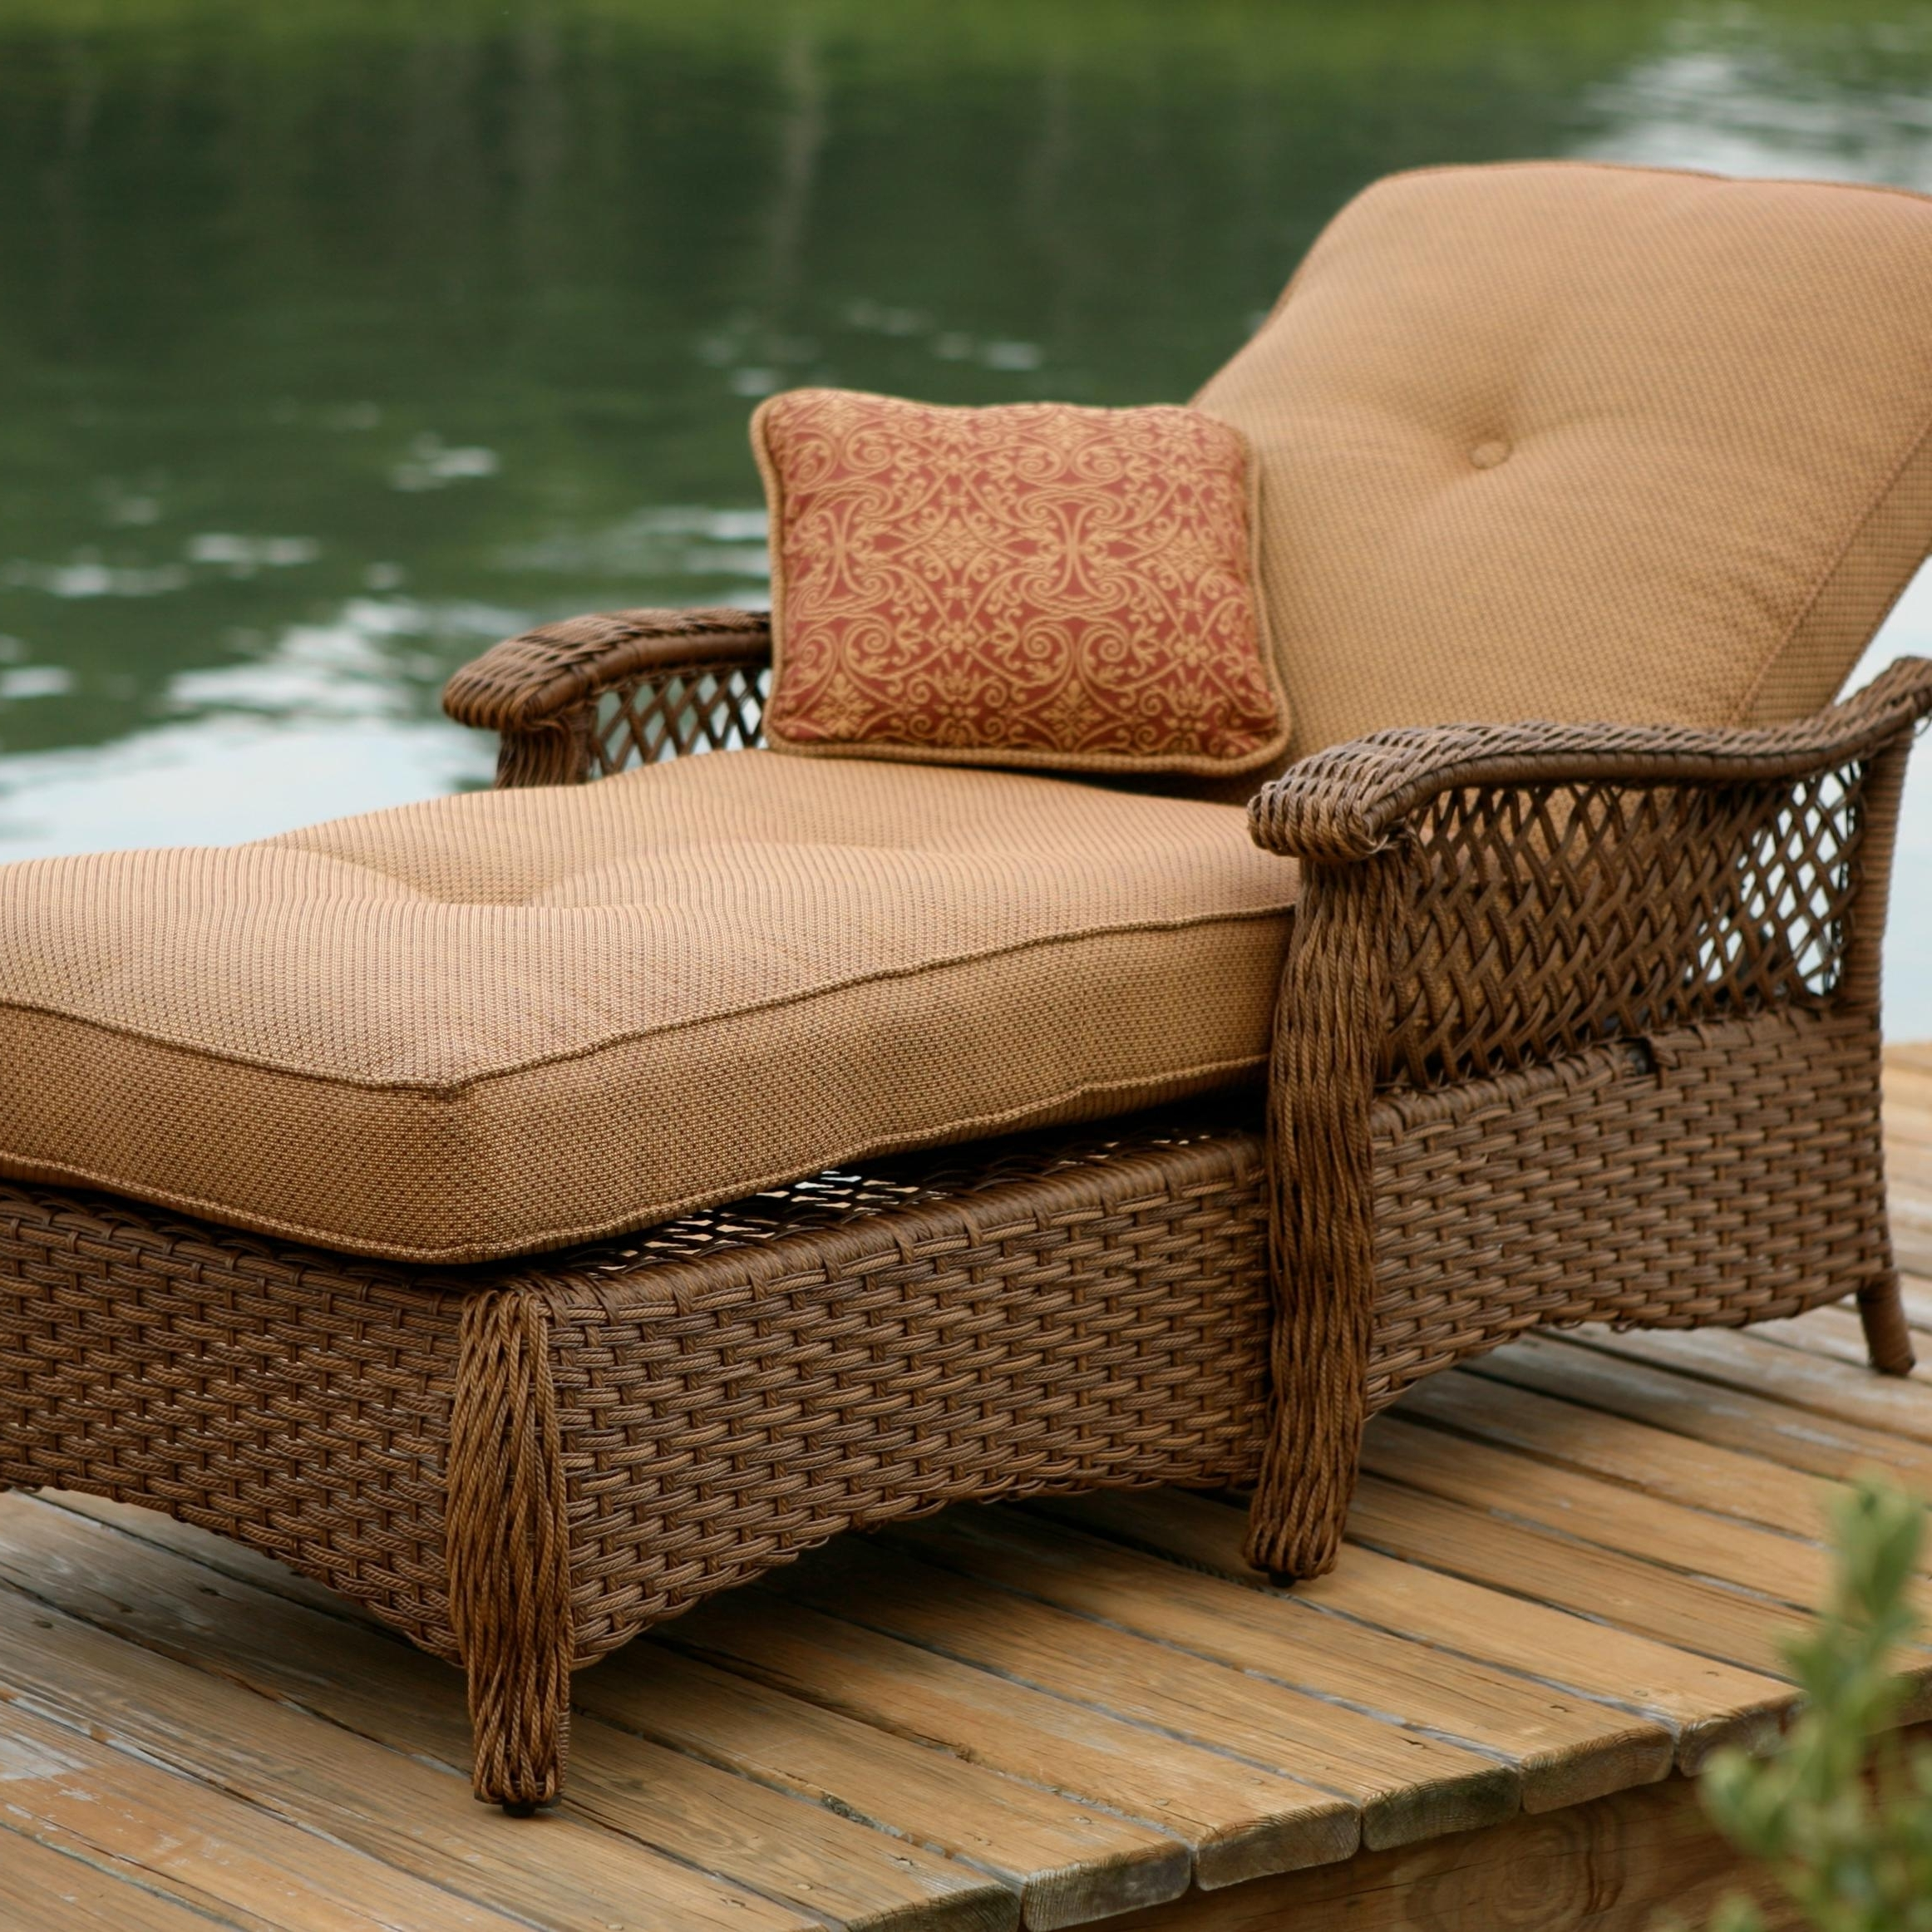 Chaise Outdoor Lounge Chairs Throughout Favorite 2018 Chaise Outdoor Lounge Chairs (43 Photos) (View 12 of 15)